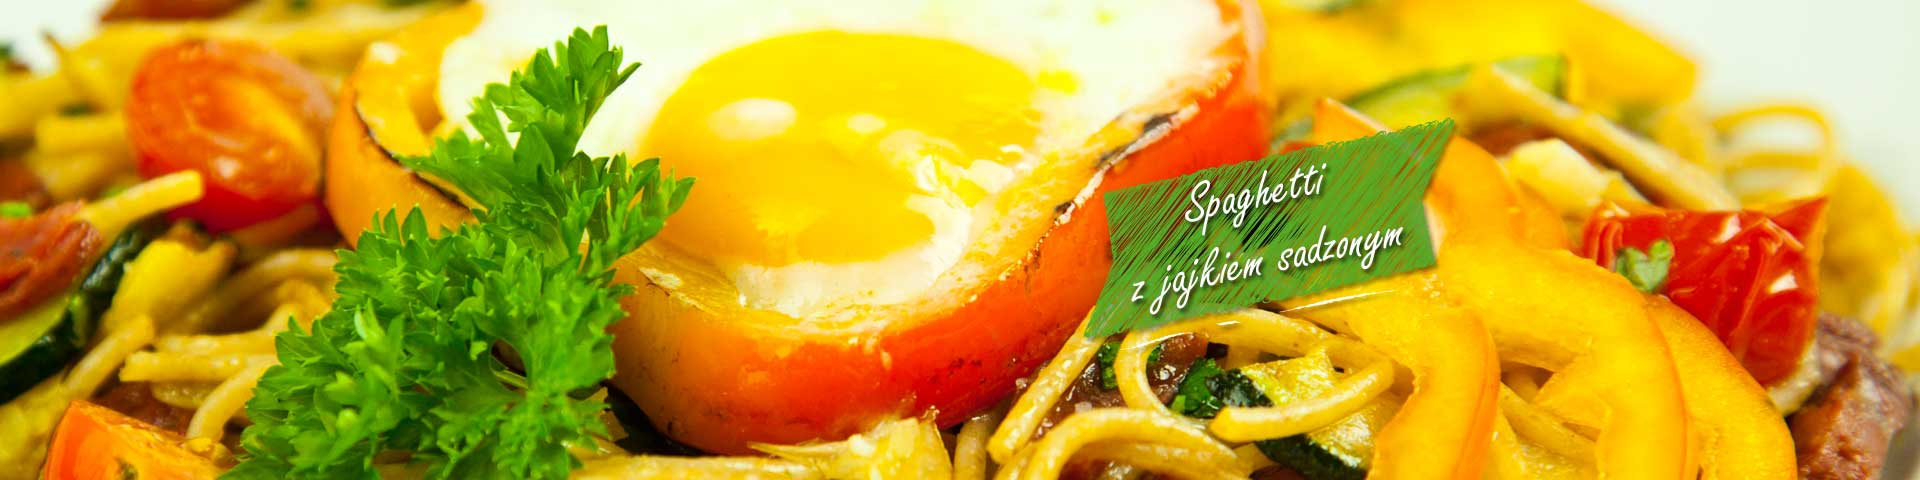 Spaghetti with fried egg